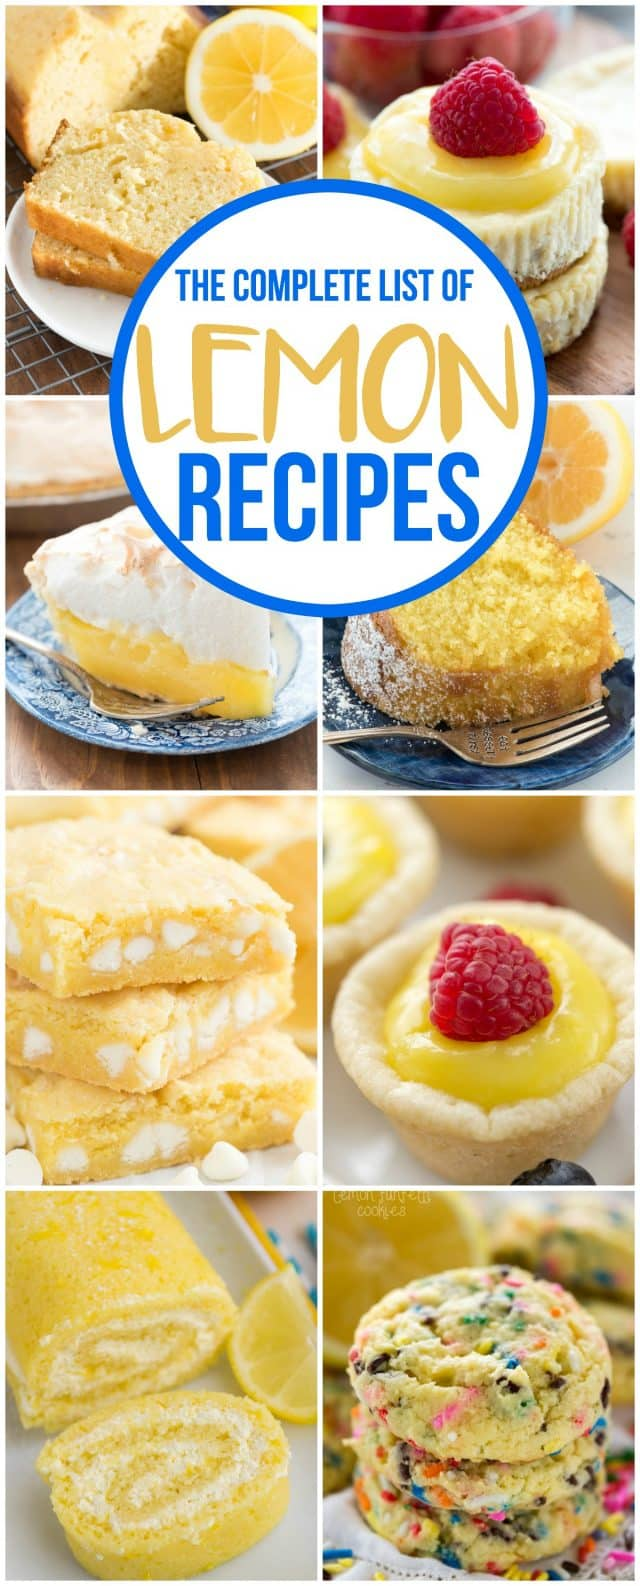 This is the COMPLETE list of lemon recipes from crazyforcrust.com. Everything you love about lemon desserts from pie to cookies and cake and more!